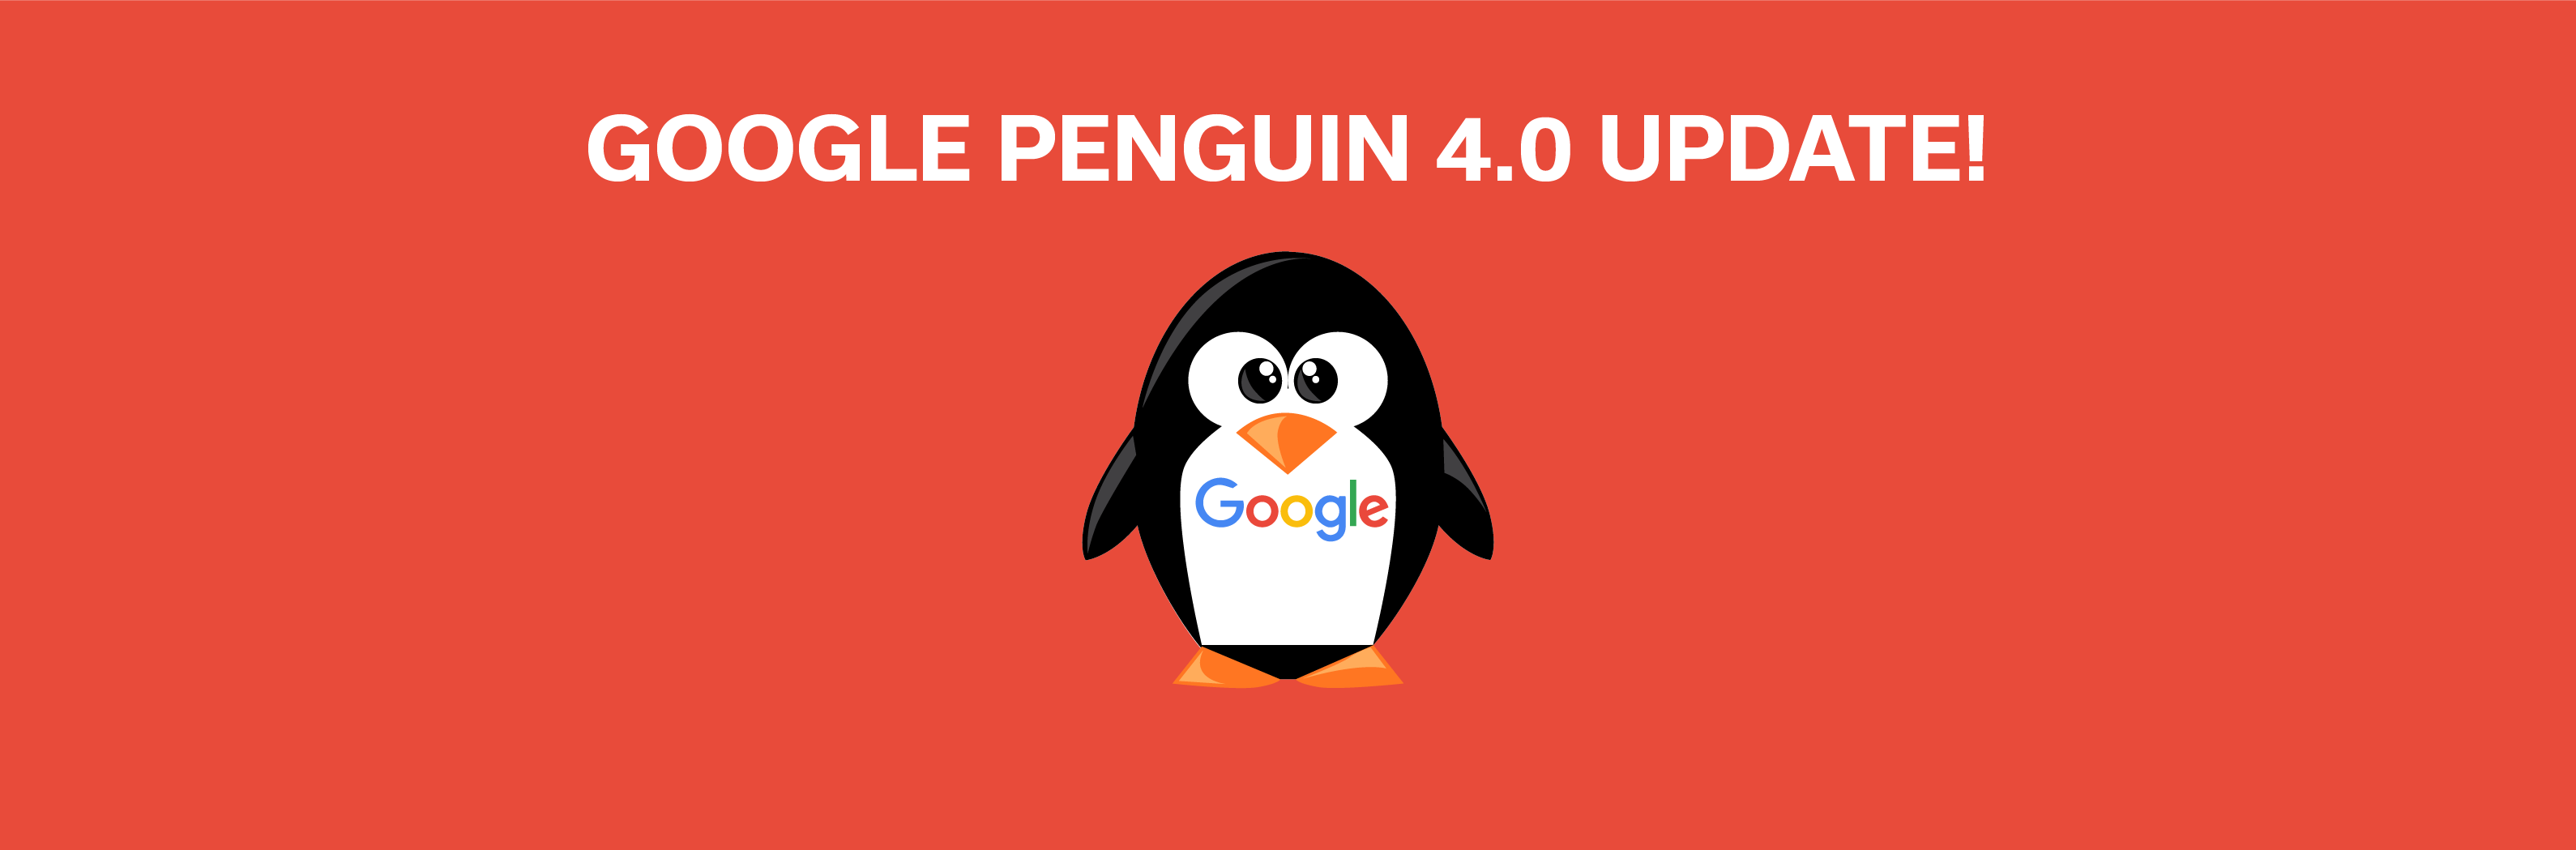 google-penguin-4-0-update-01